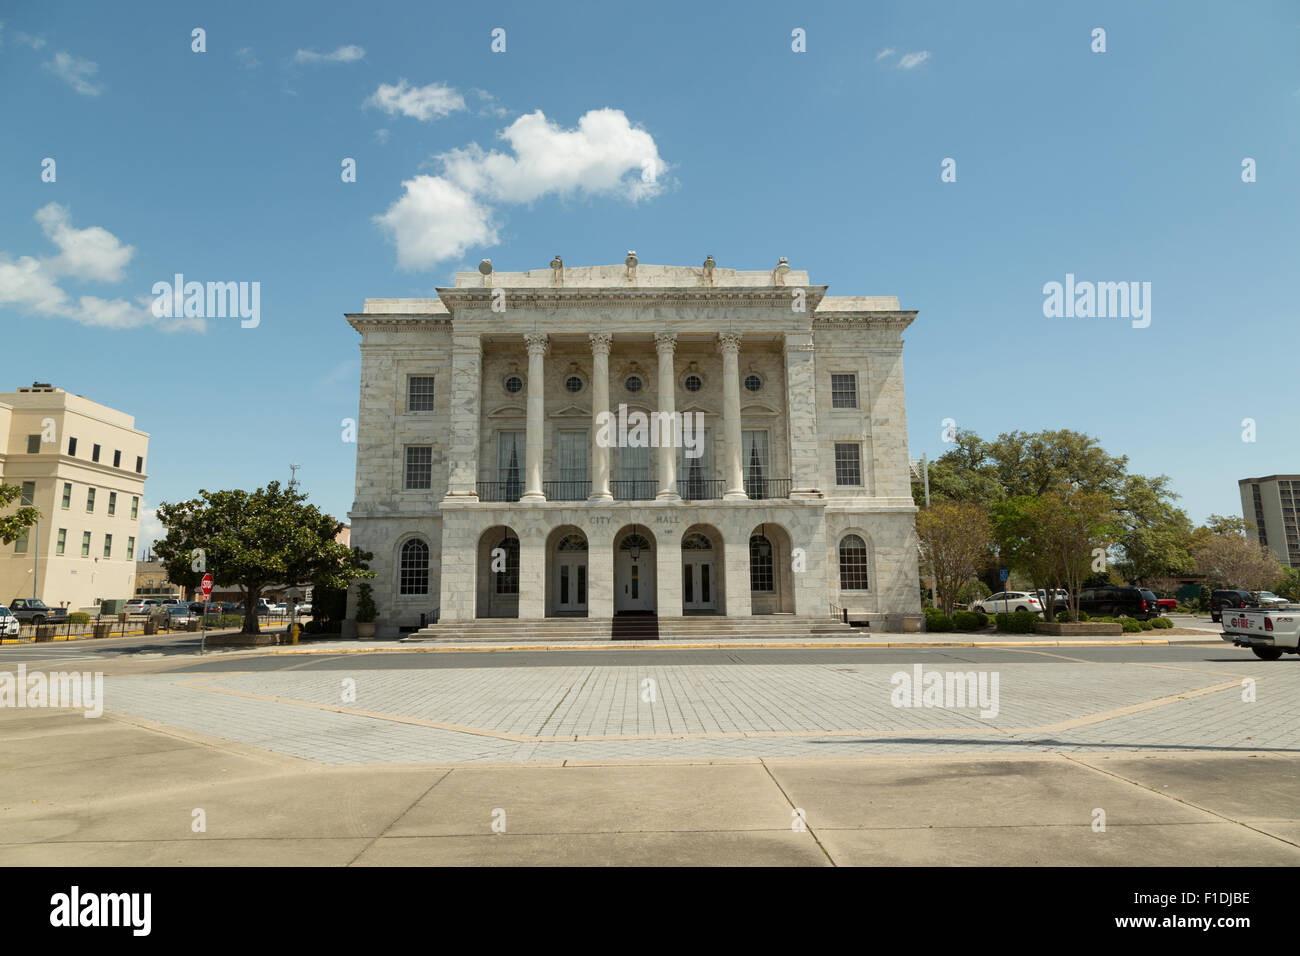 A Photograph Of City Hall In Downtown Biloxi Mississippi Usa Stock Photo Alamy